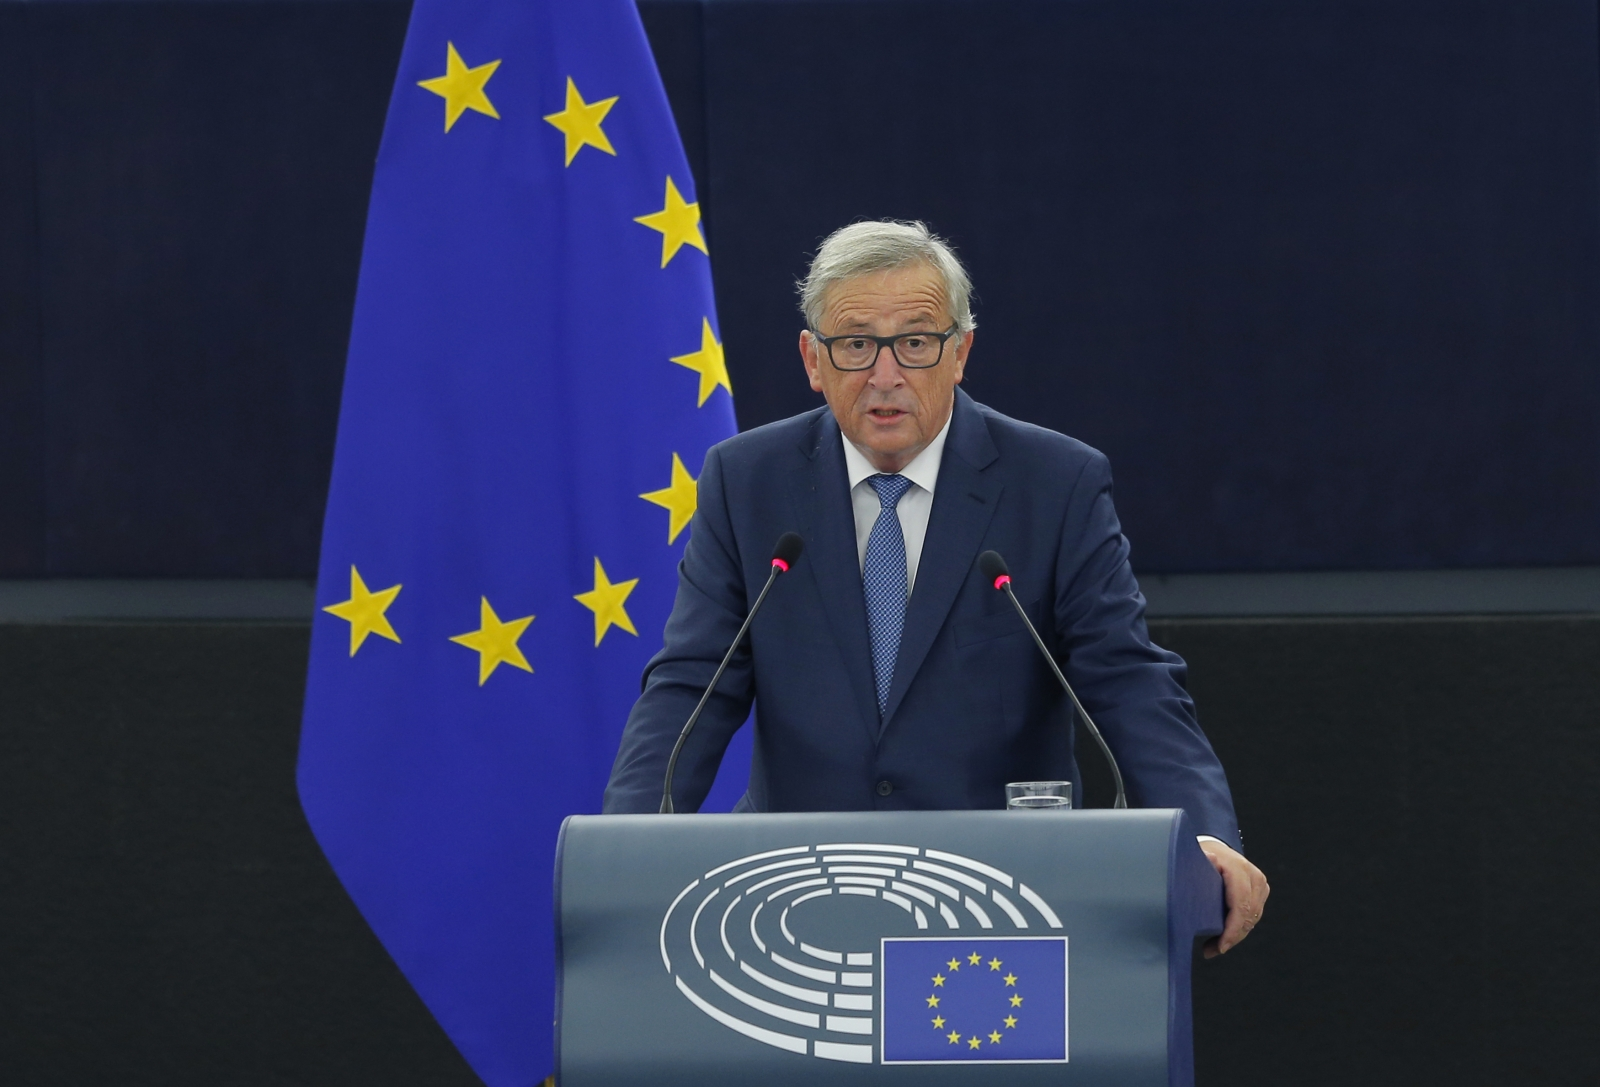 EU's Juncker: English is losing importance in Europe